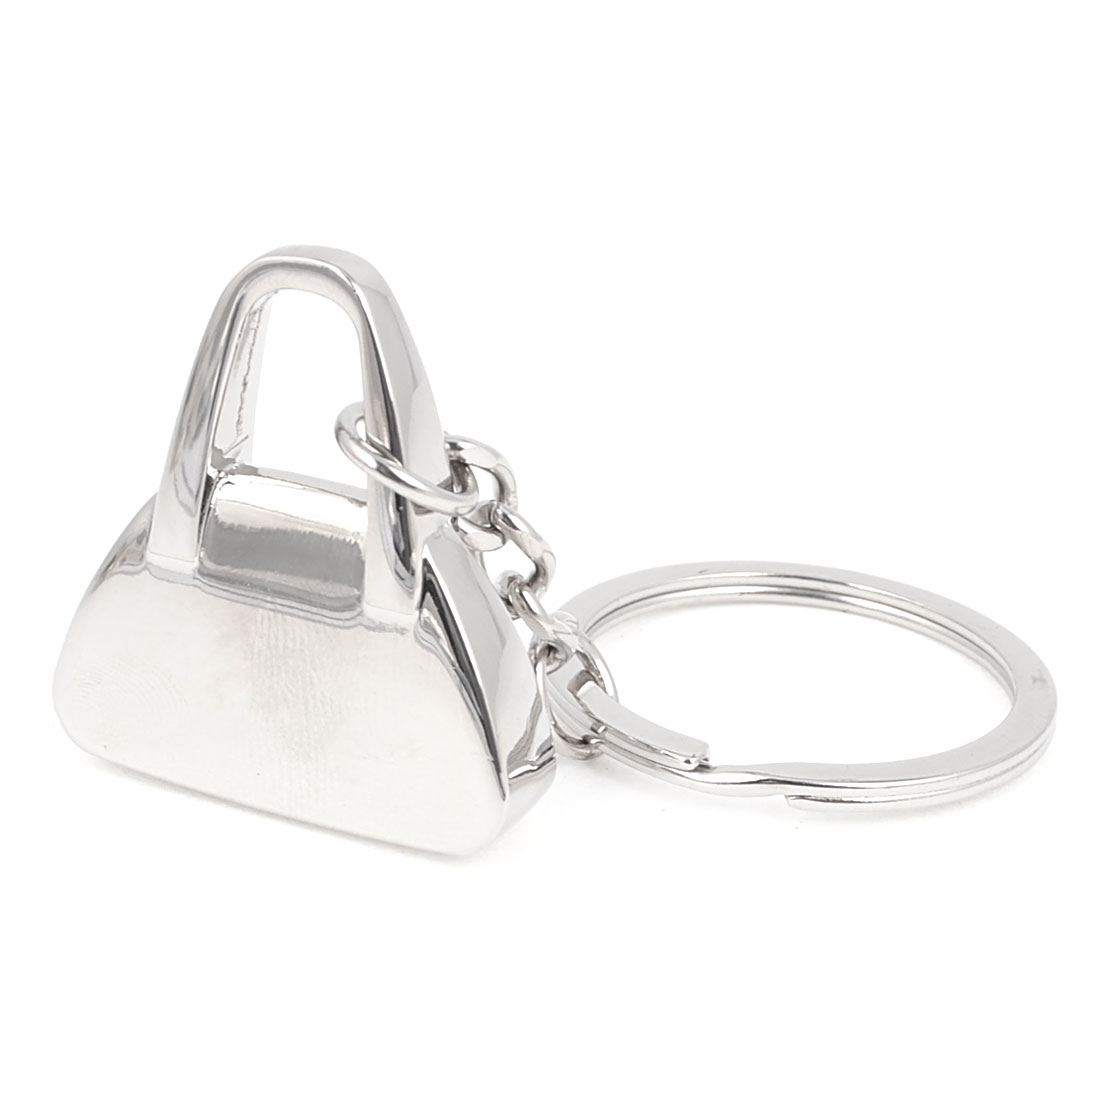 Handbag Shaped Decoration Dangle Pendant Keychain Silver Tone